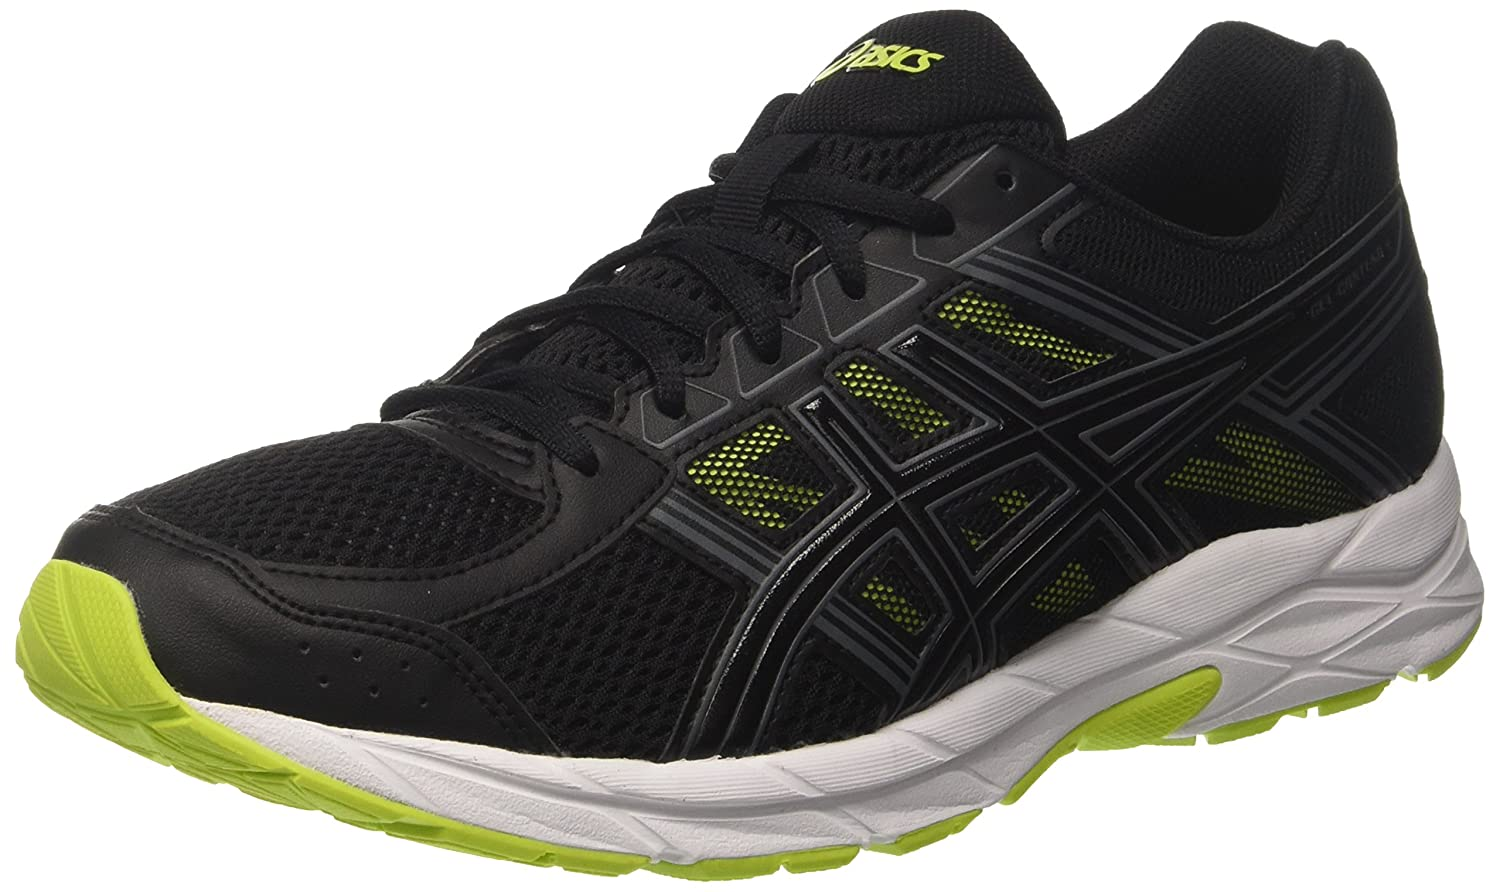 a912e95b4319 ASICS Men s Gel-Contend 4 Running Shoes  Buy Online at Low Prices in India  - Amazon.in